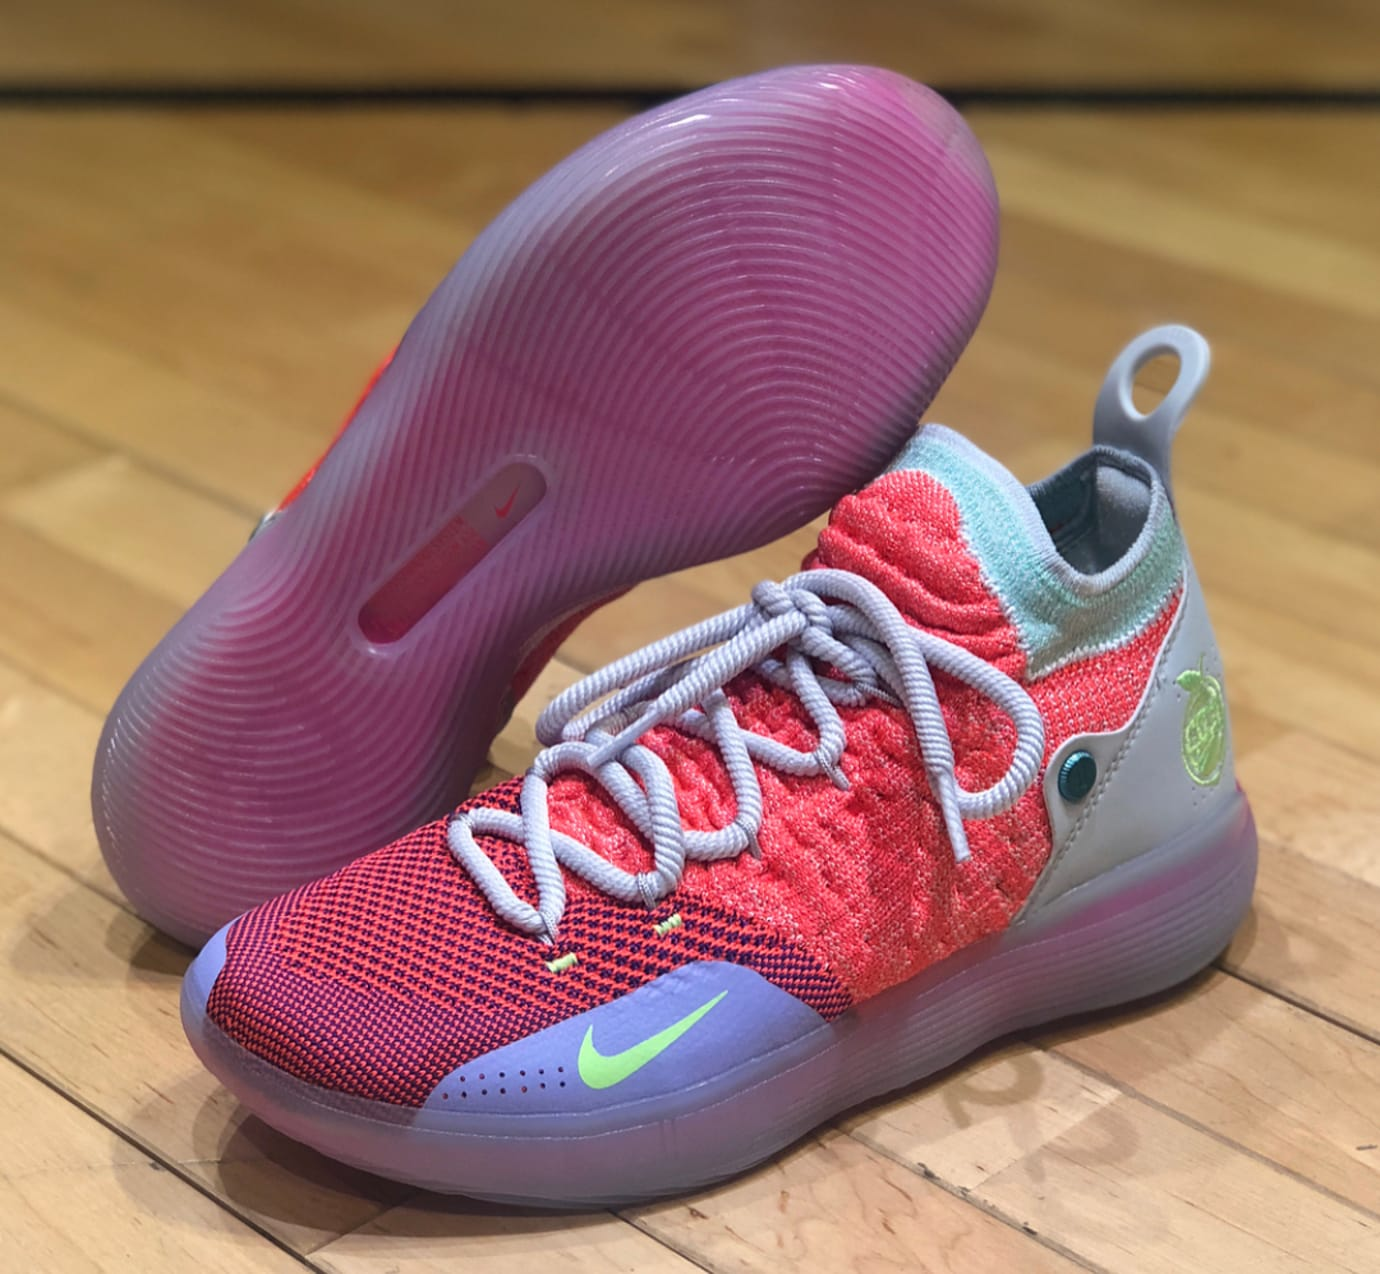 01c5e542fbf1 Image via  hoopcity dongdaemun · Nike KD 11  EYBL  GS (Lateral and Outsole)